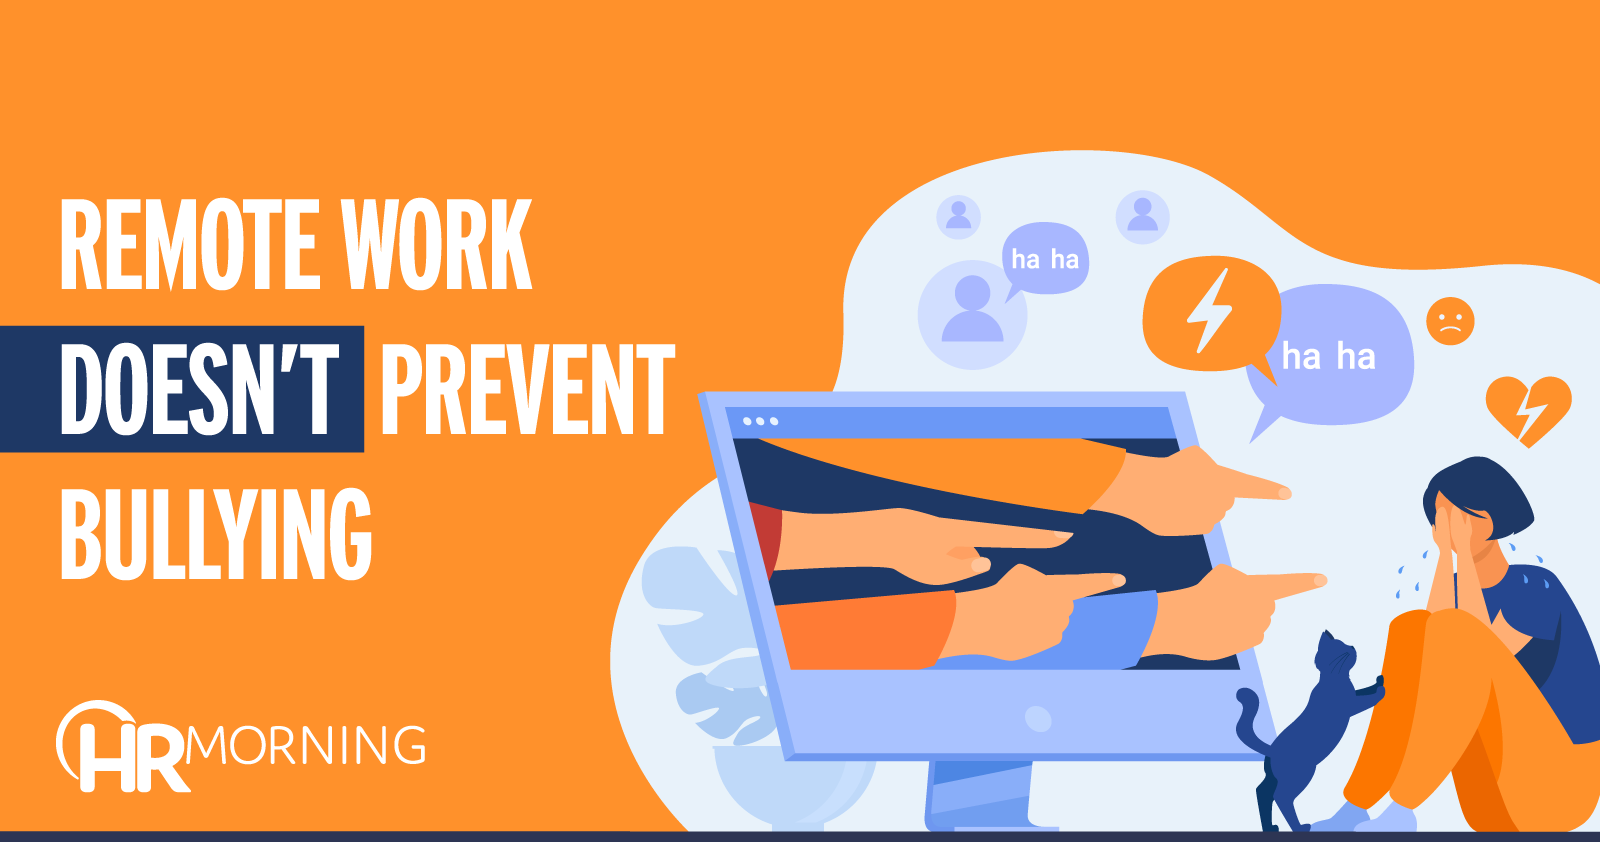 remote work does not prevent bullying